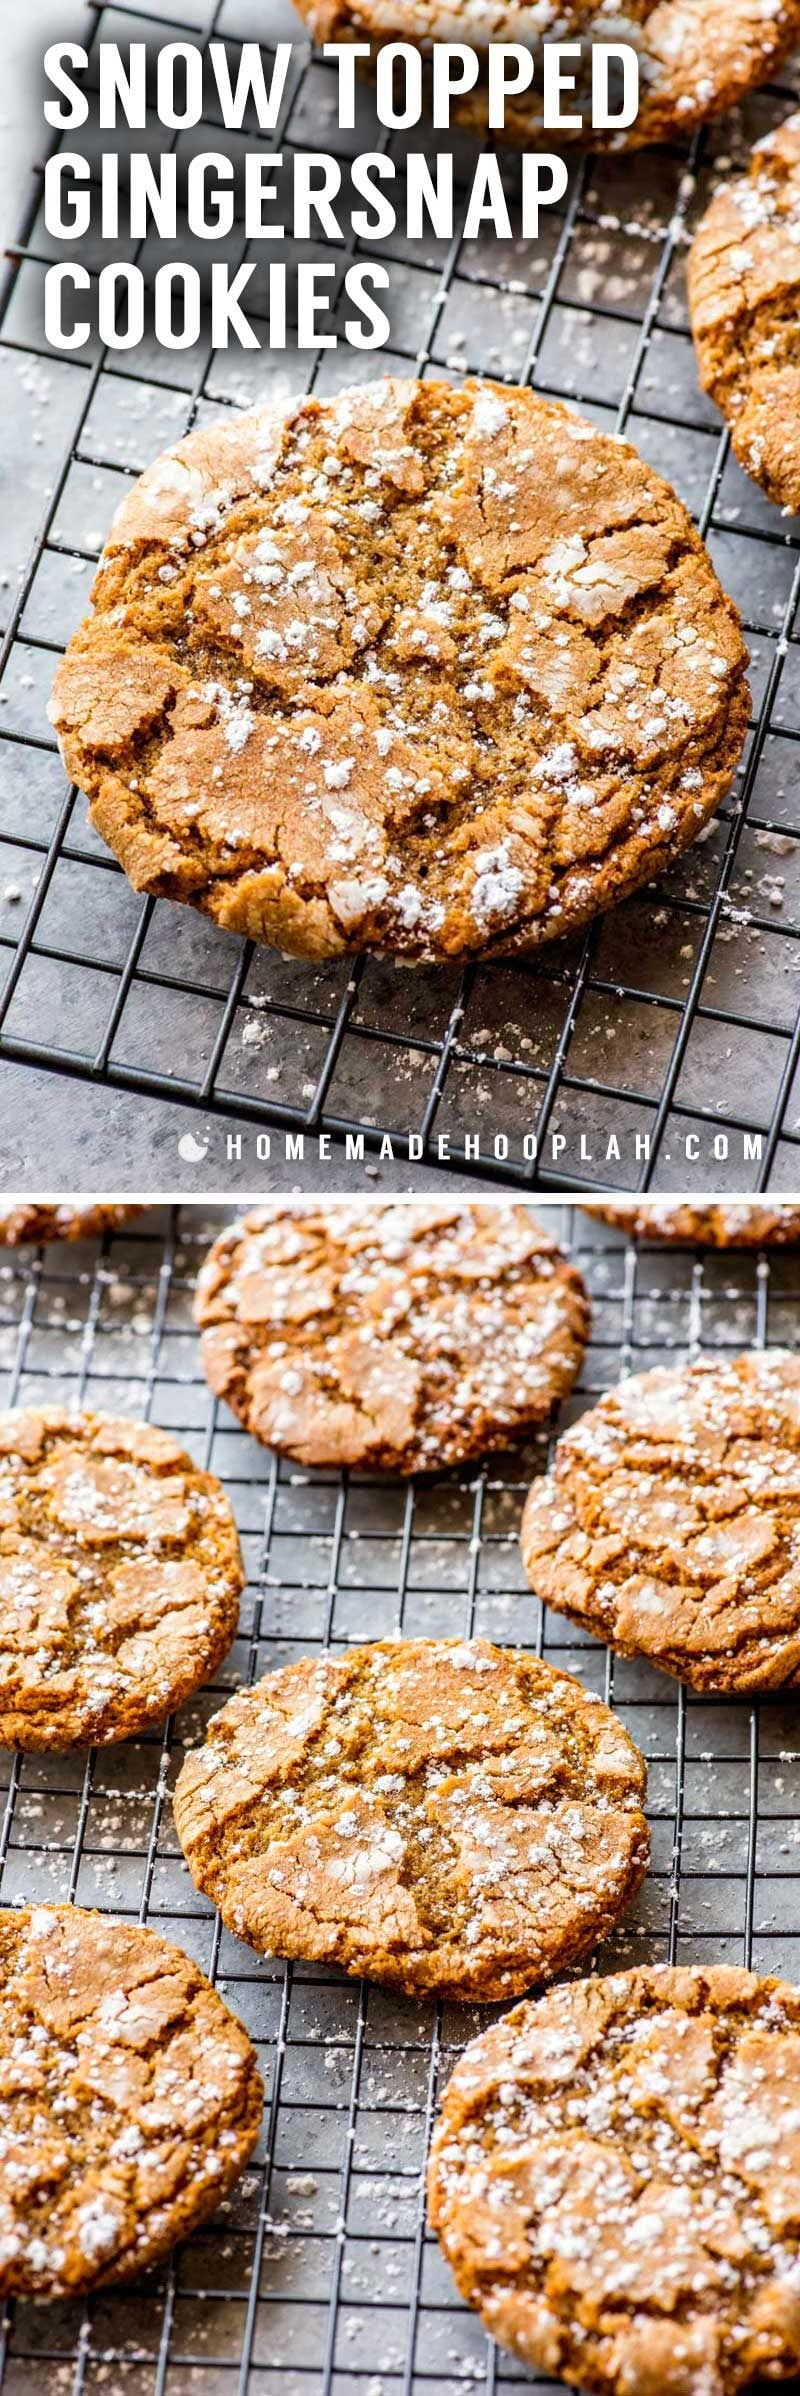 Soft and chewy gingersnap cookies.